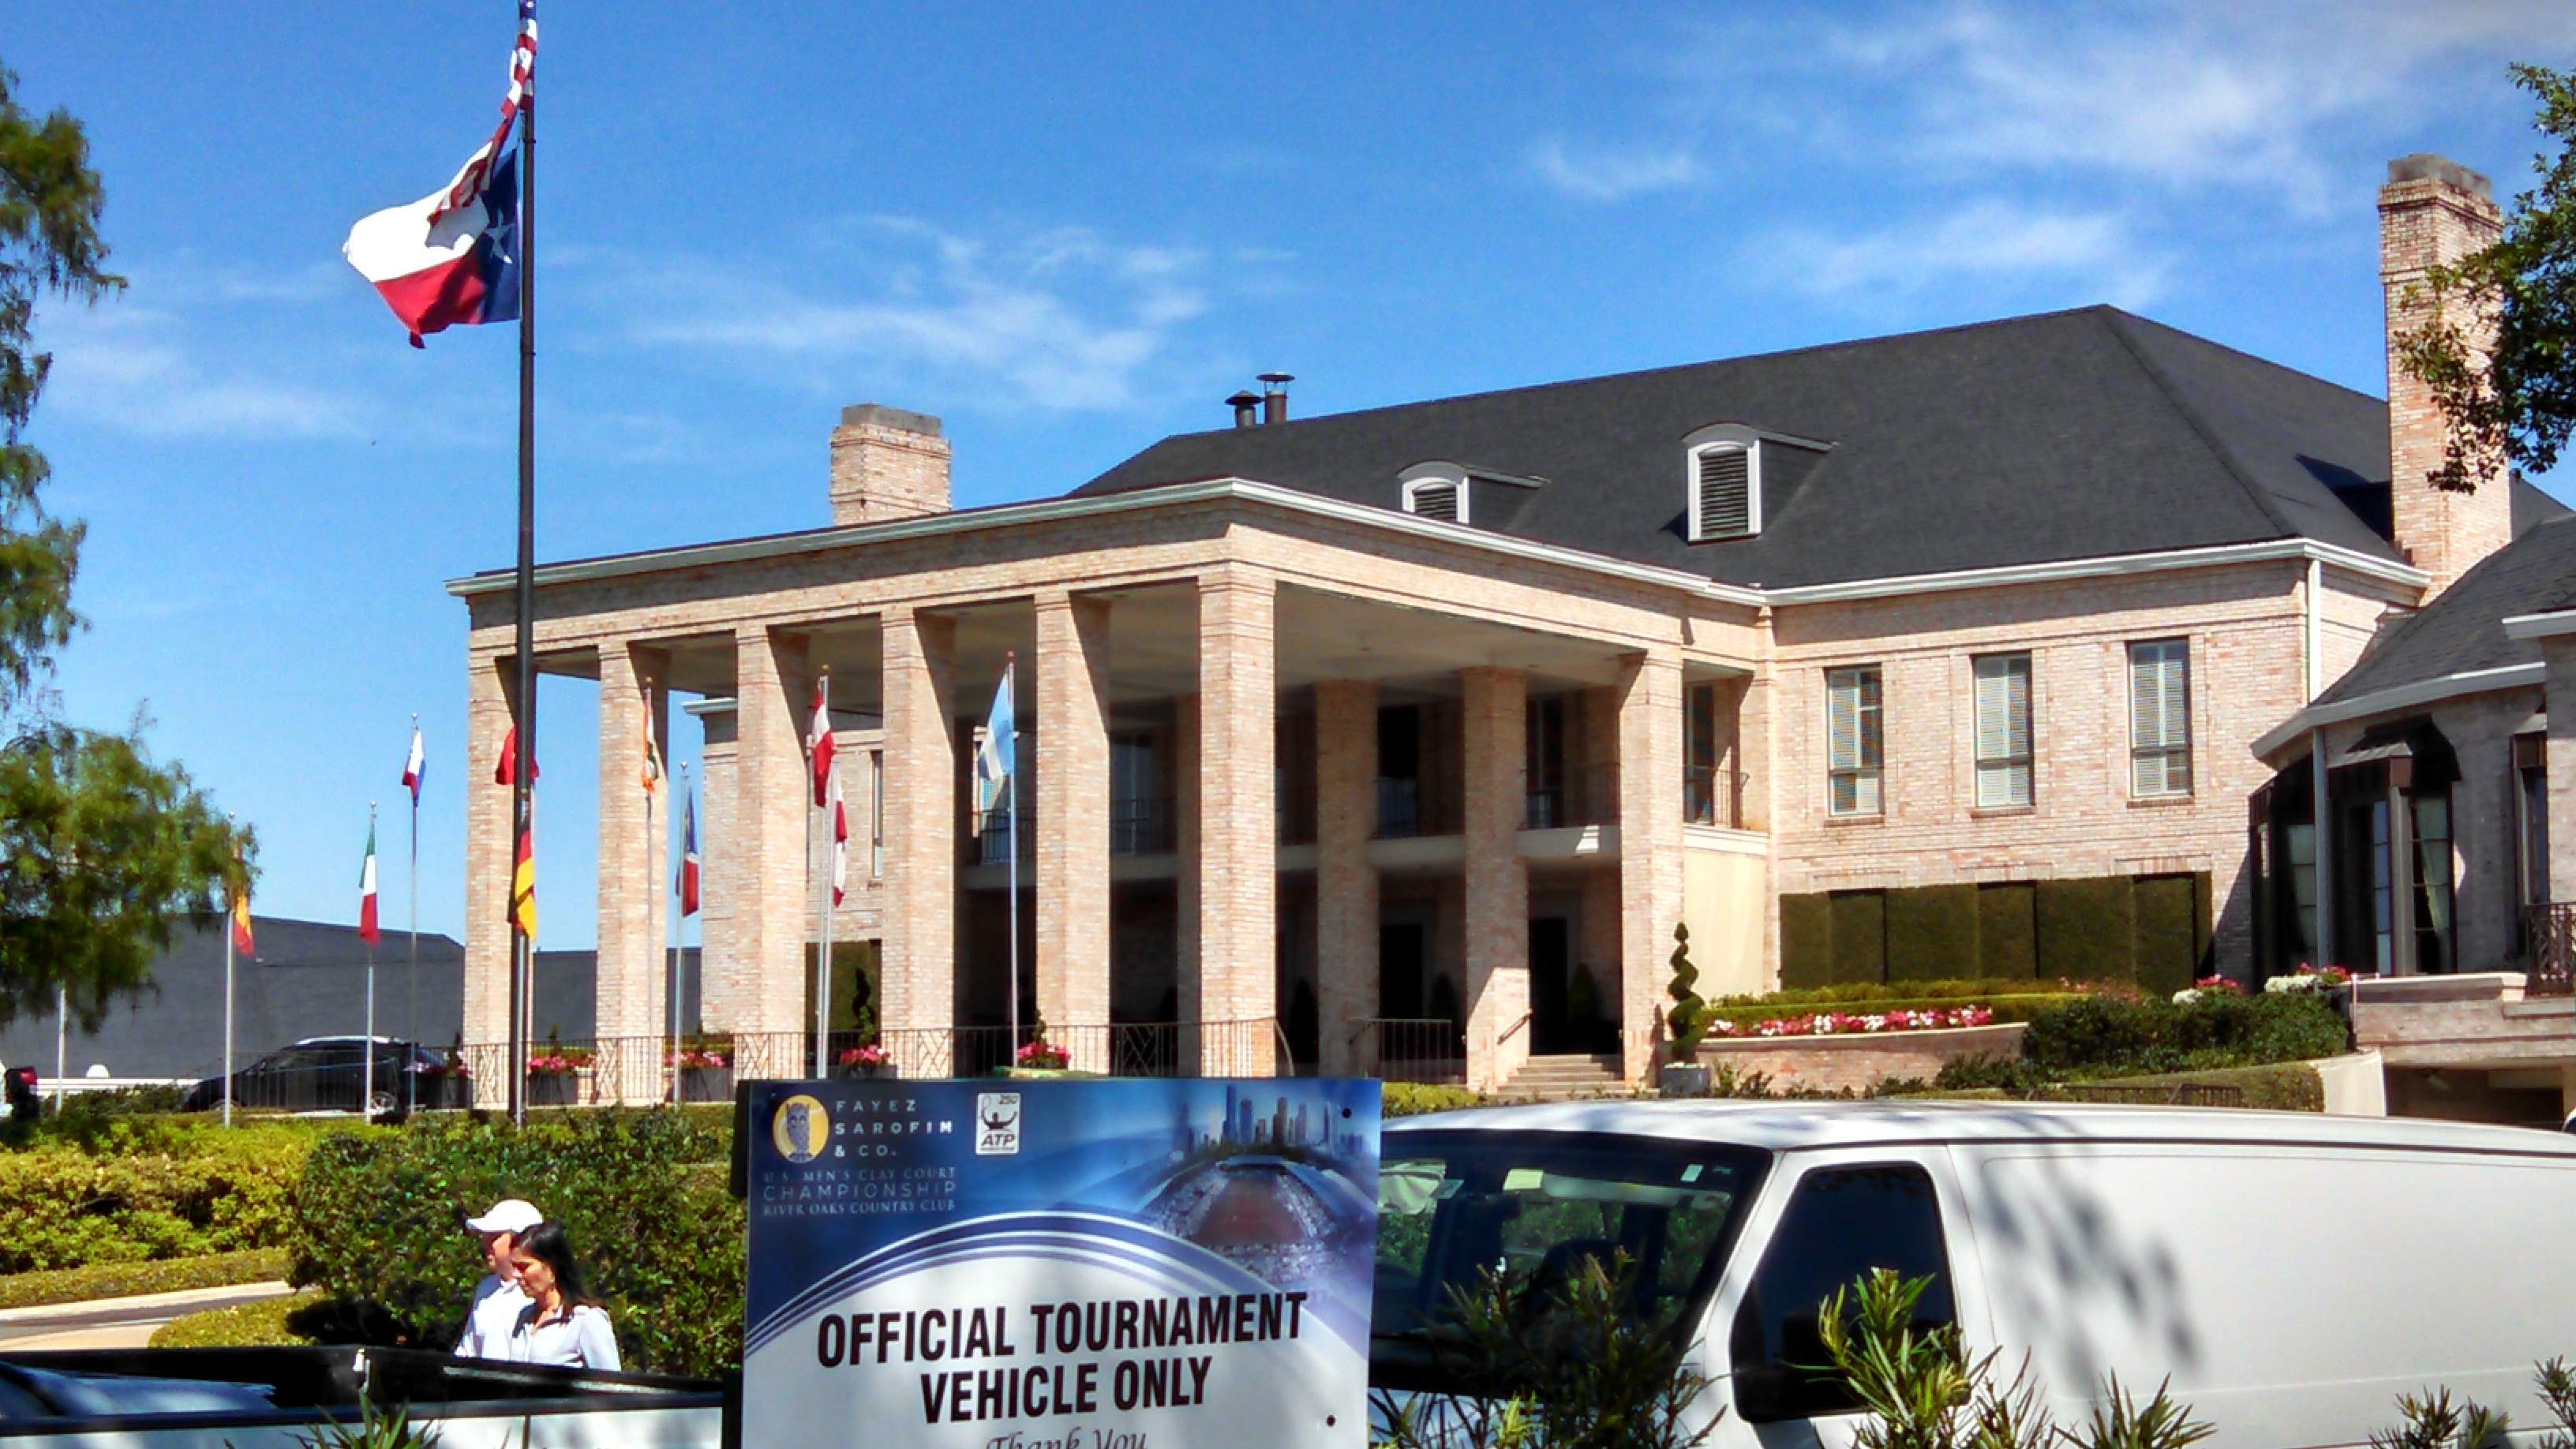 River Oaks Country Club in Houston, where Jack Sock is defending his title. (Photo by Greg Echlin)